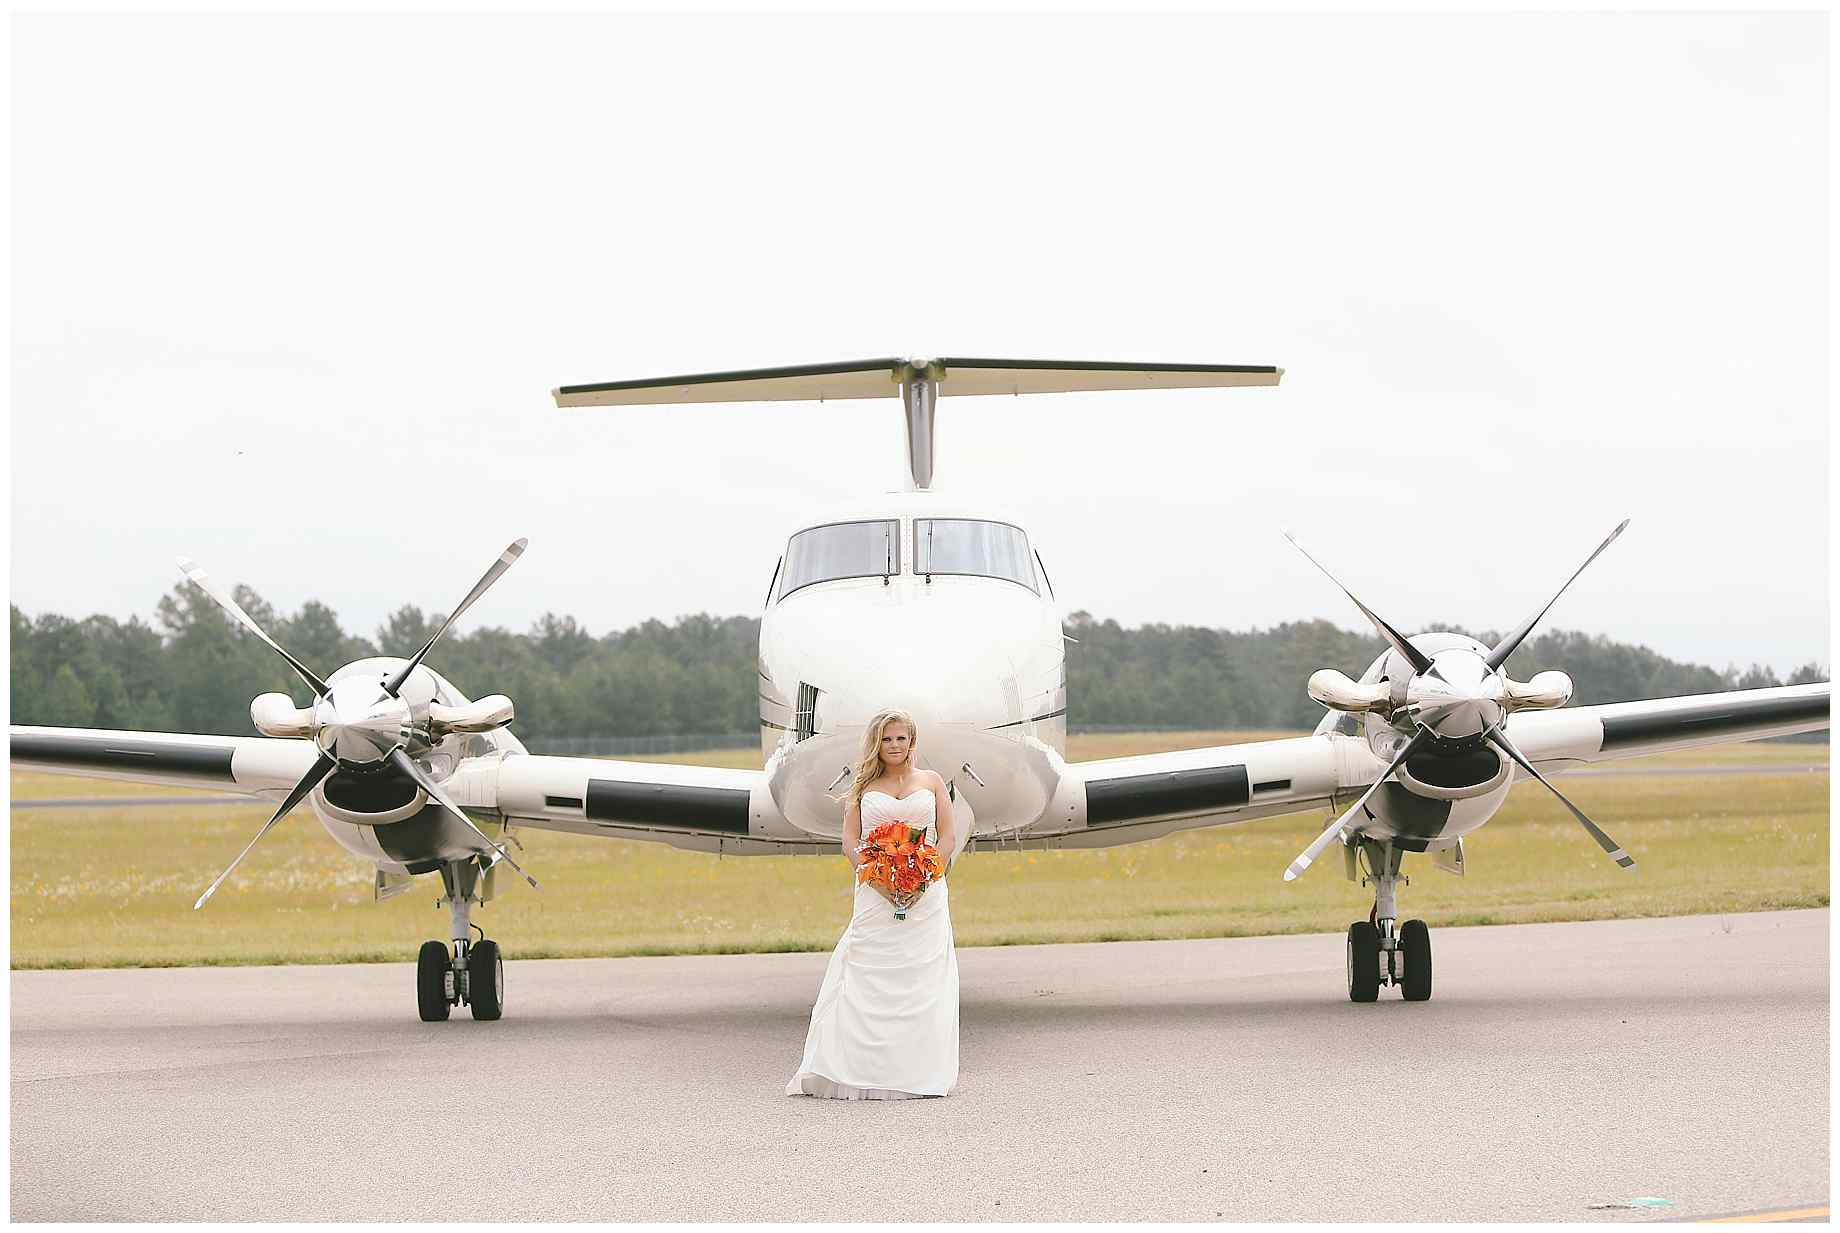 airplane-bridal-photos-002